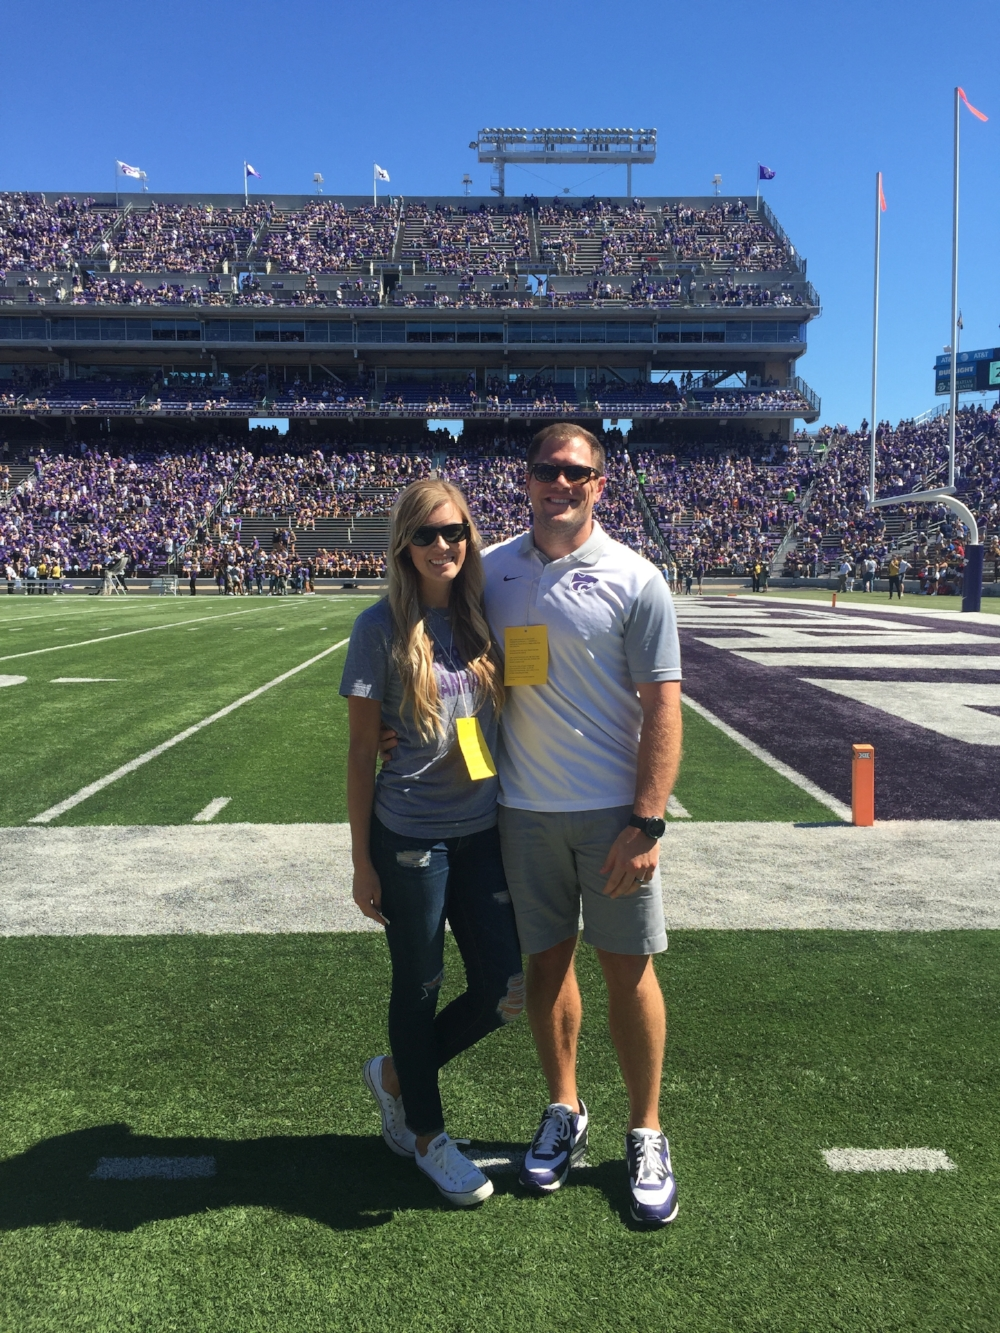 On the field before the game for a former player even for Nolan